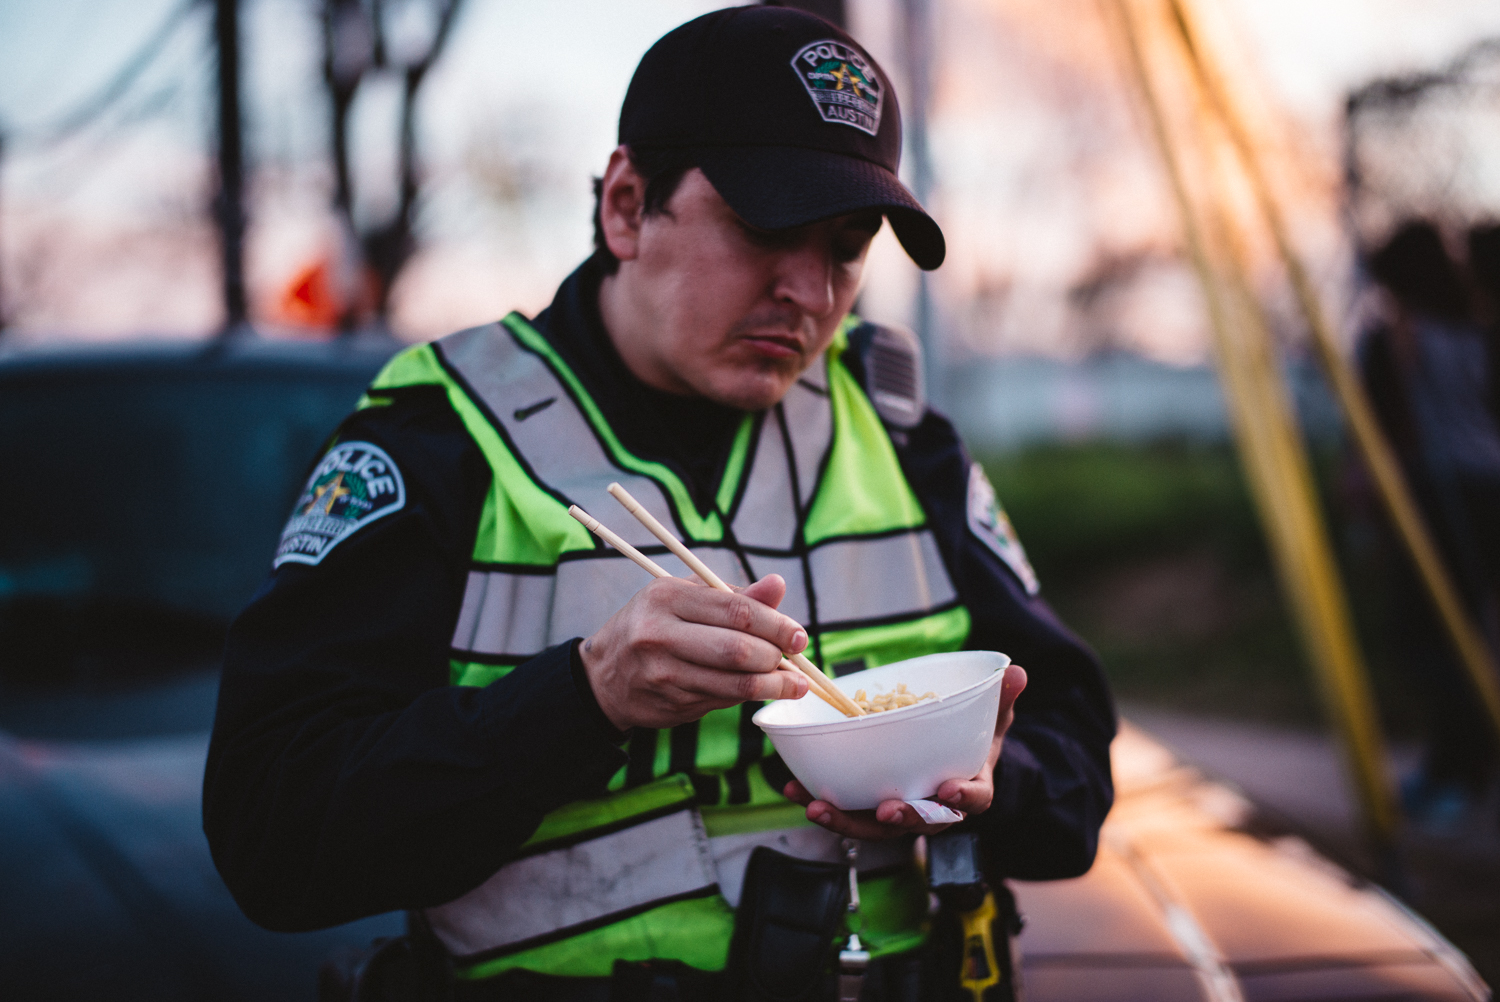 Police Officer Noodles Eating SXSW 2015 Michael Lim Photography Austin Texas